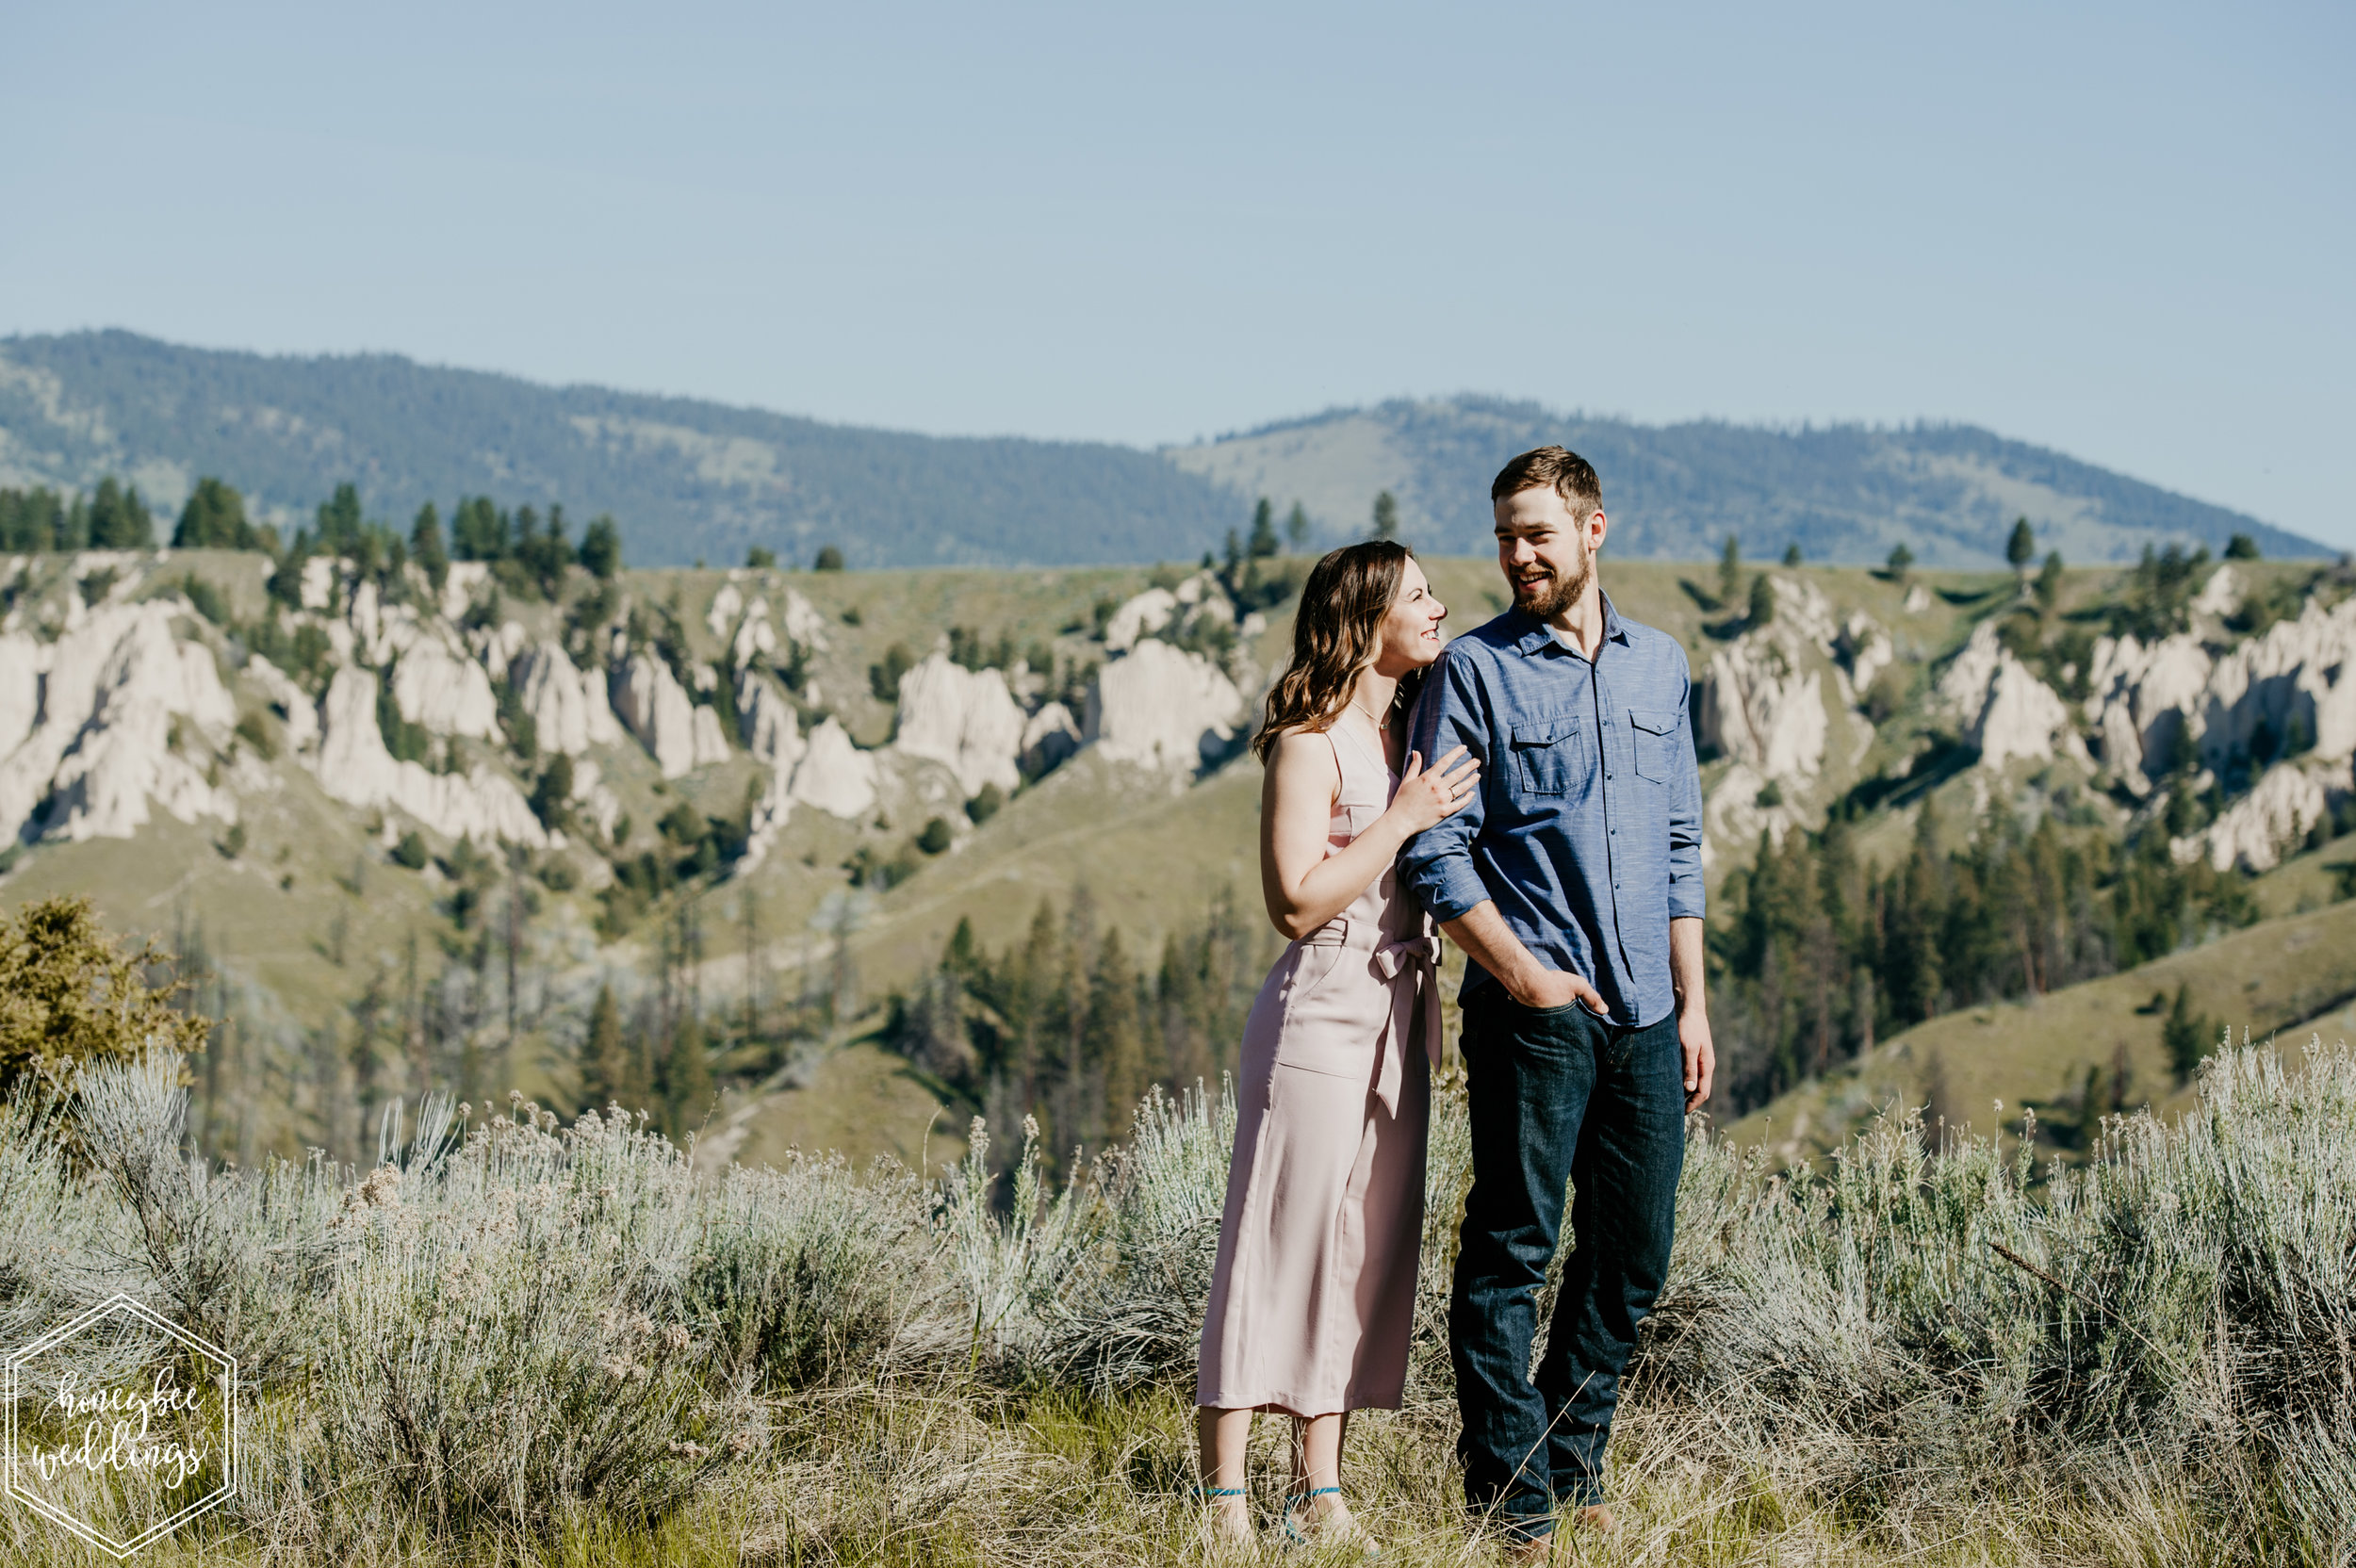 099Montana Wedding Photographer_Polson Engagement Session_Carrie & Matt_Honeybee Weddings_May 11, 2019-115.jpg